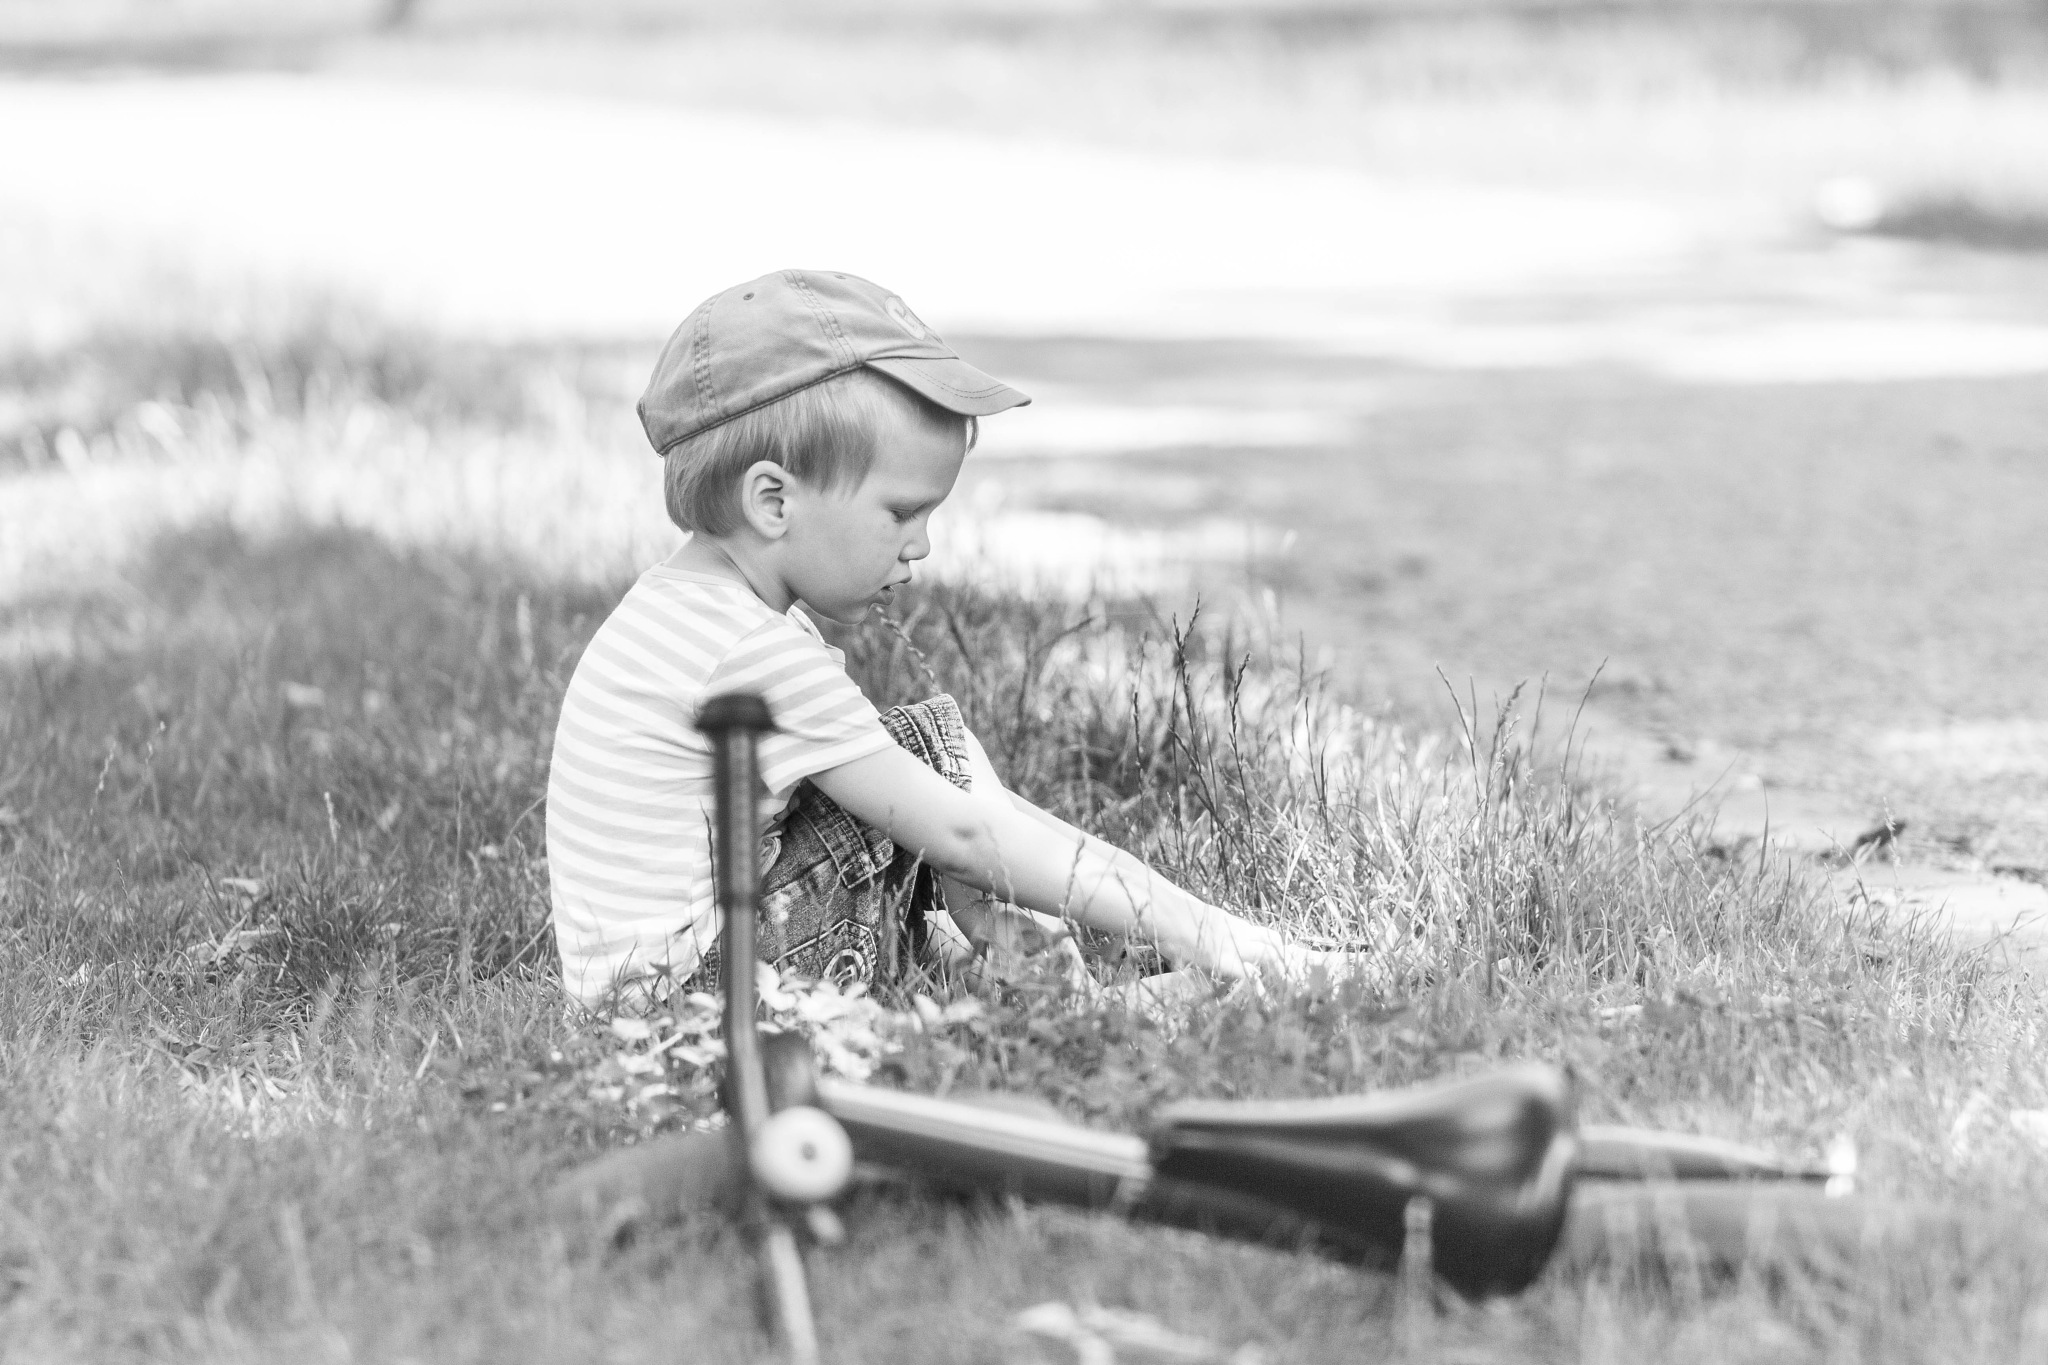 Little boy with his Bicycle by Márton Csordás